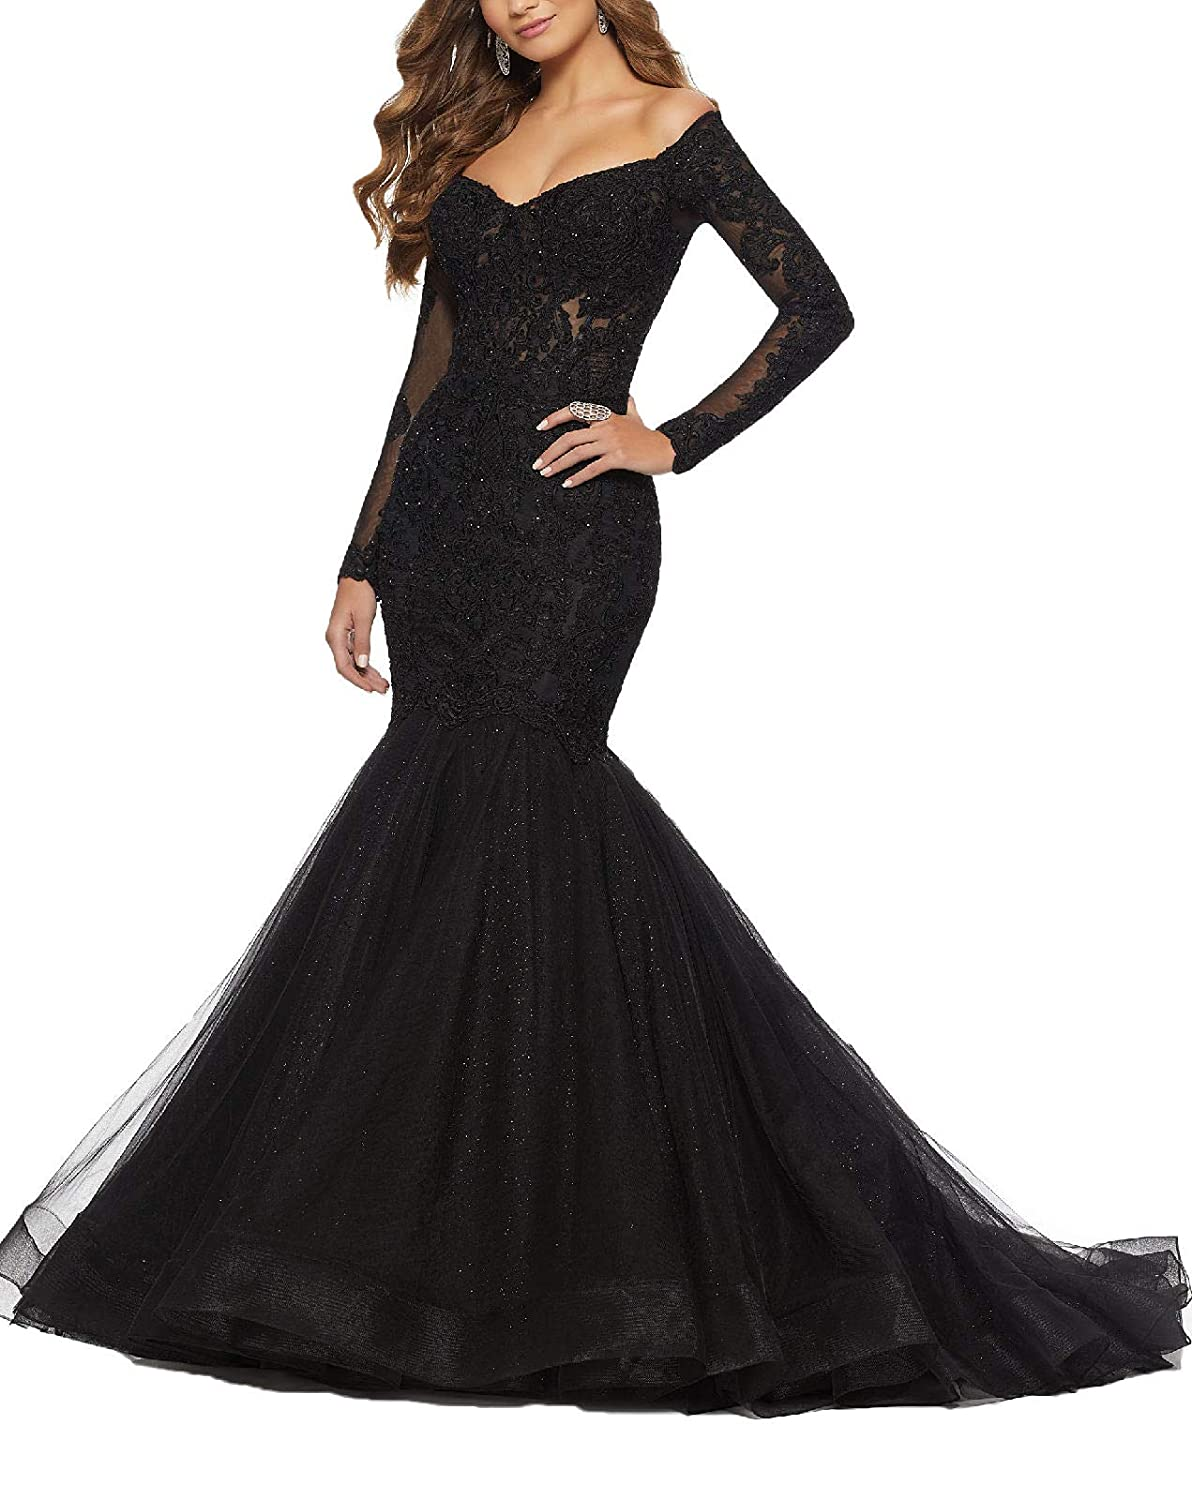 Black Yisha Bello Women's Off The Shoulder Long Sleeve Mermaid Pro Dress Lace Applique Beaded Evening Dress Formal Ball Gowns